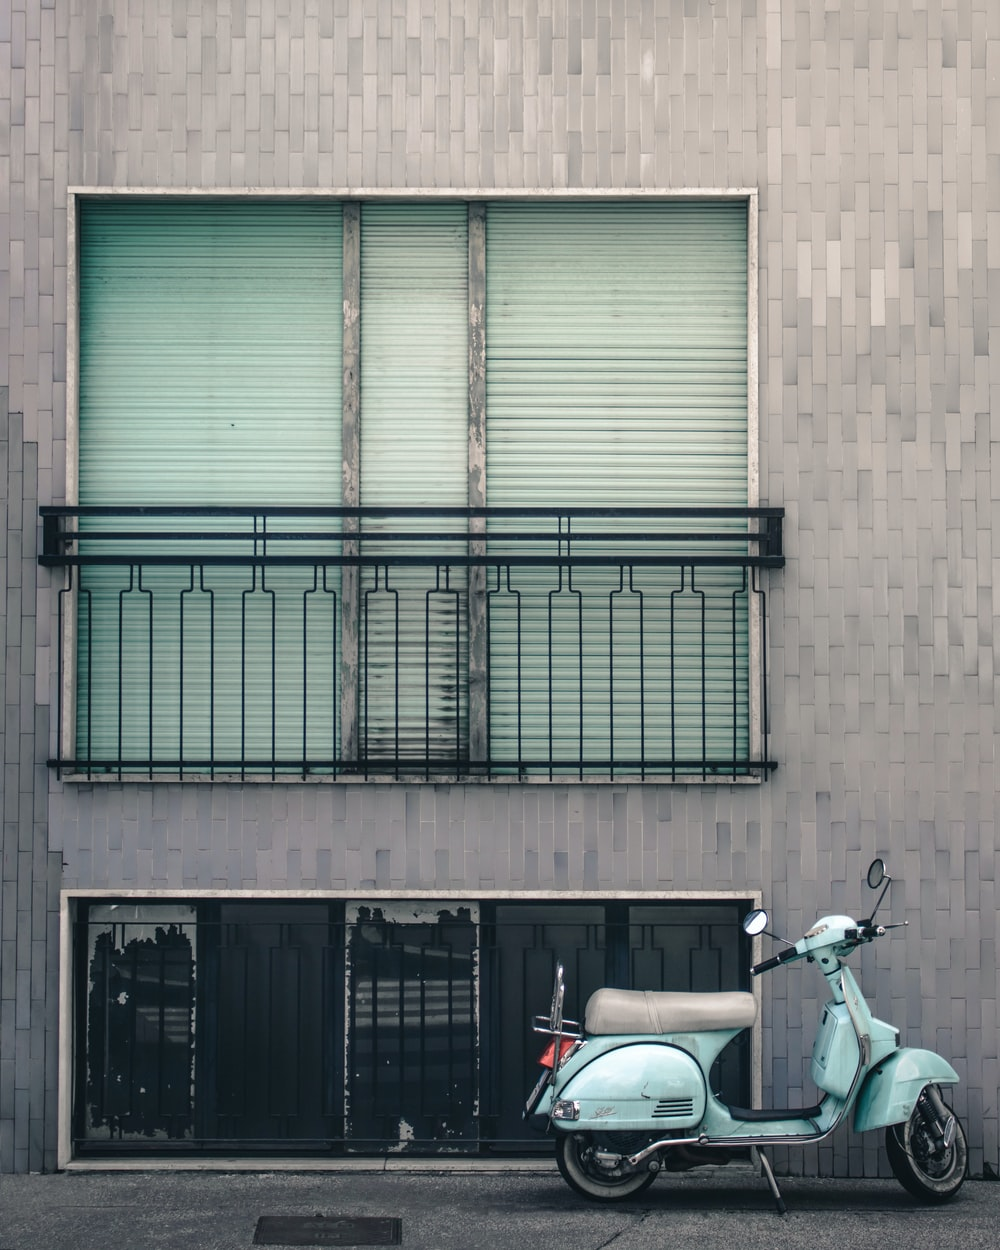 white and black motorcycle parked beside brown building